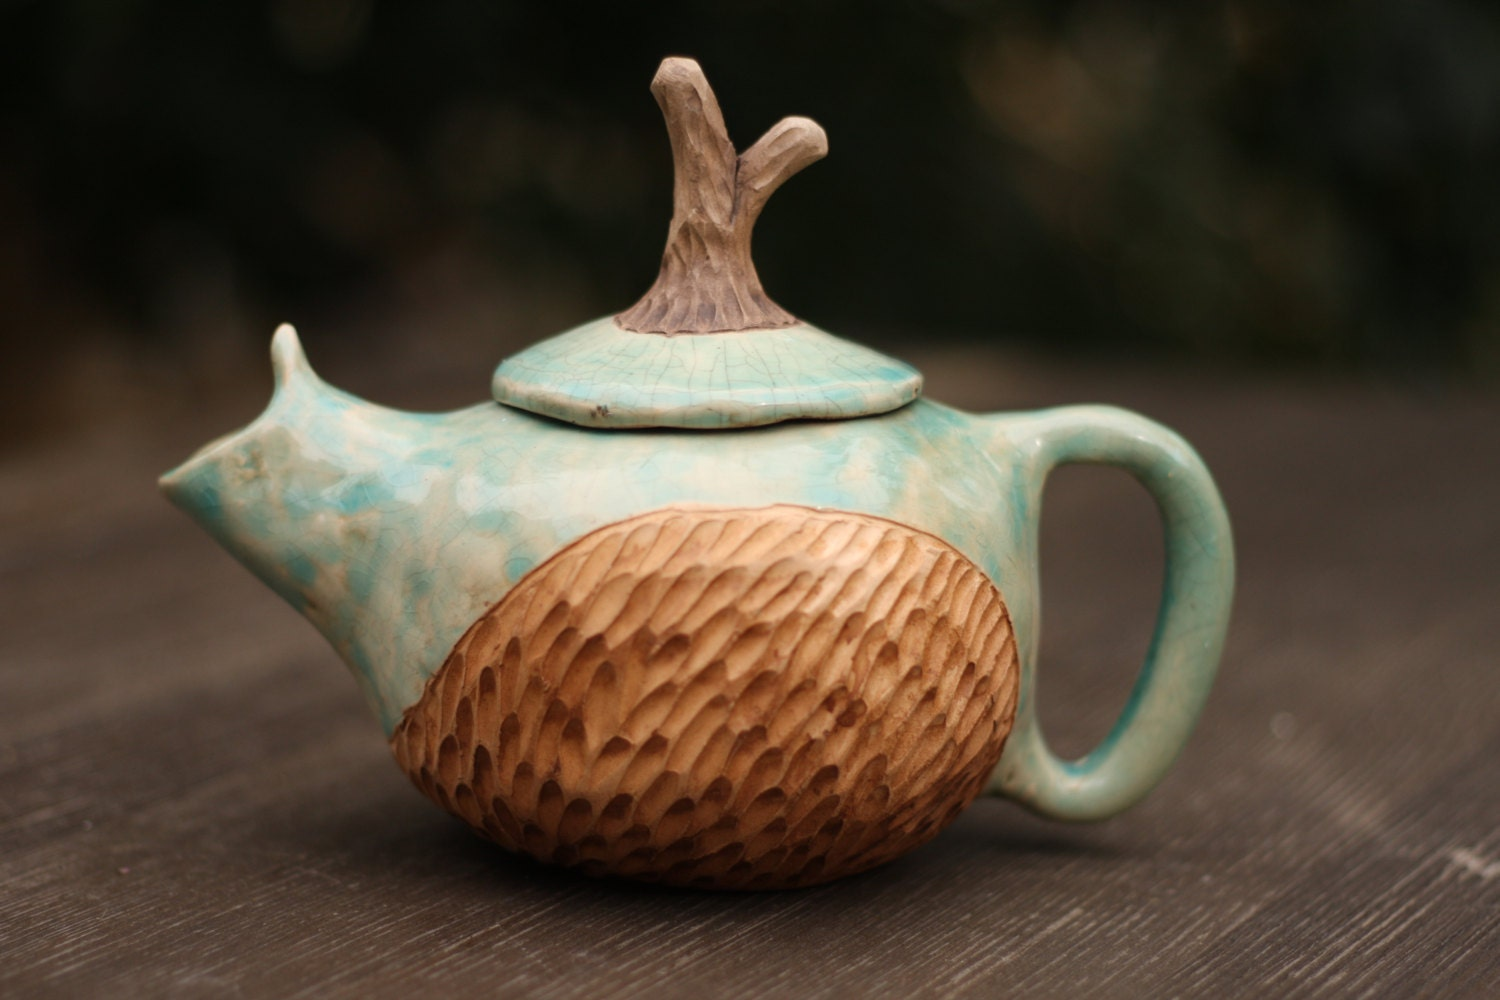 Turquoise teapot Unique ceramic teapot One of kind gift teapot